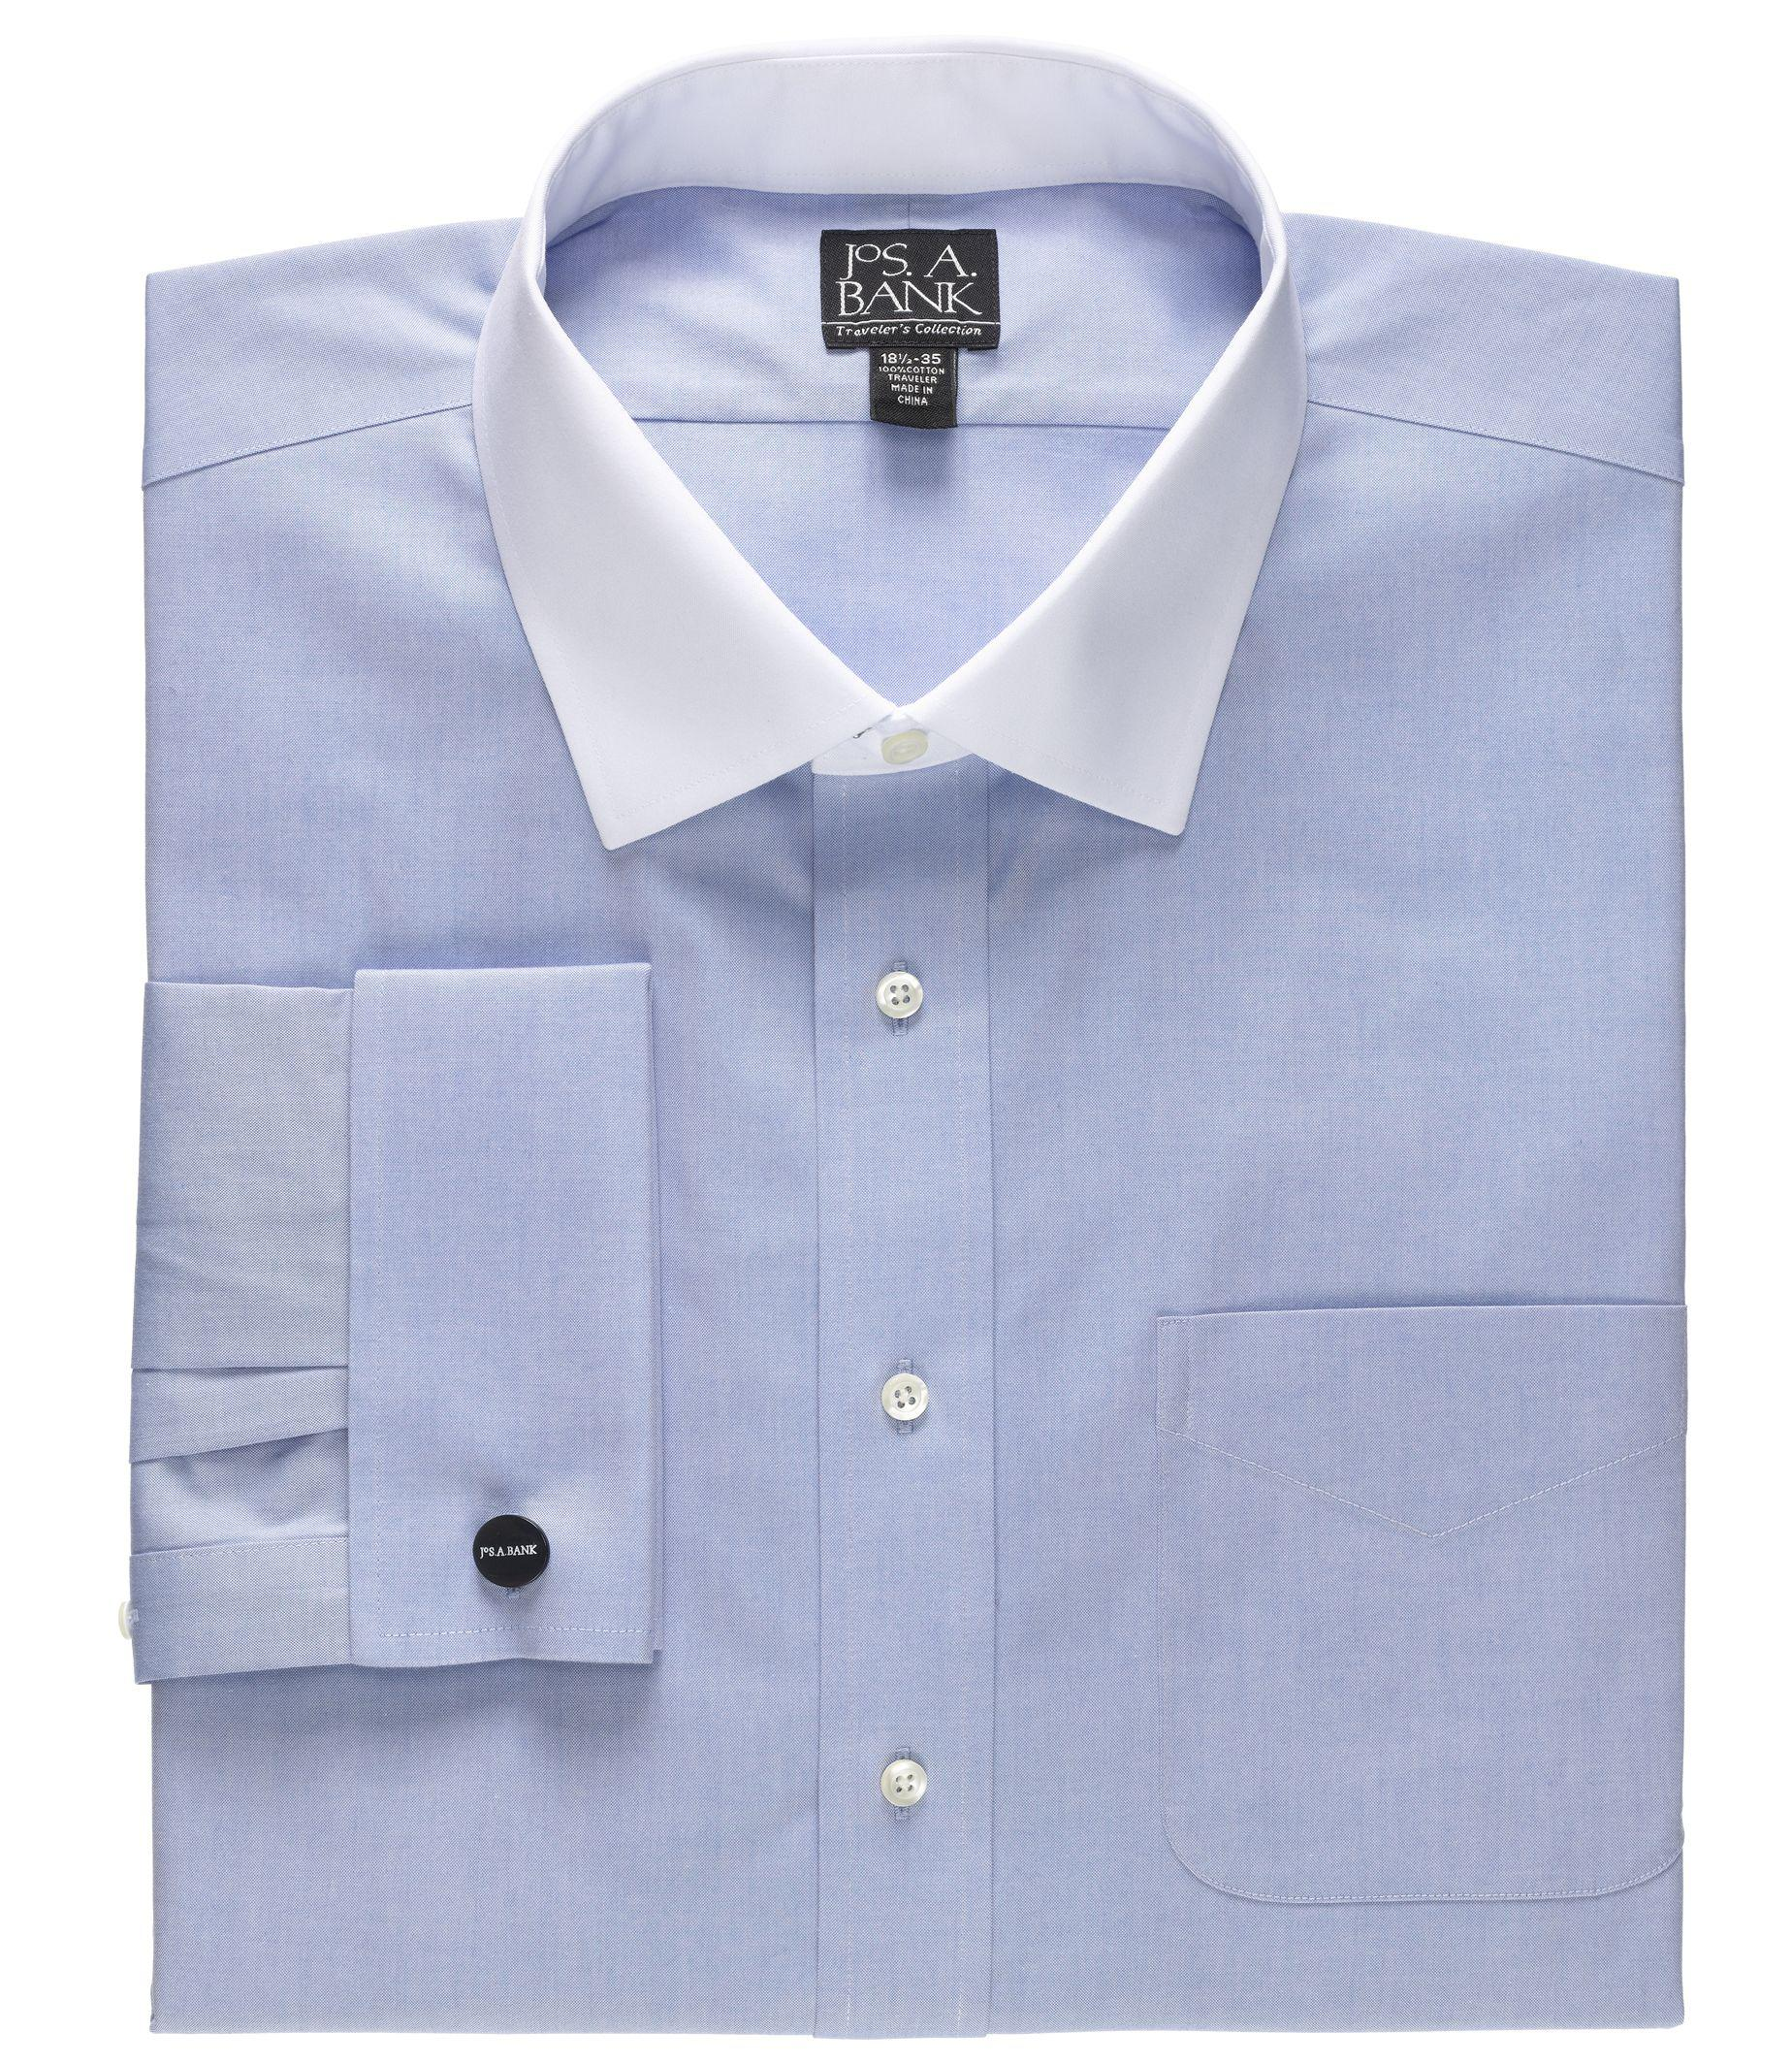 Lyst jos a bank traveler collection tailored fit for Mens dress shirts with contrasting collars and cuffs